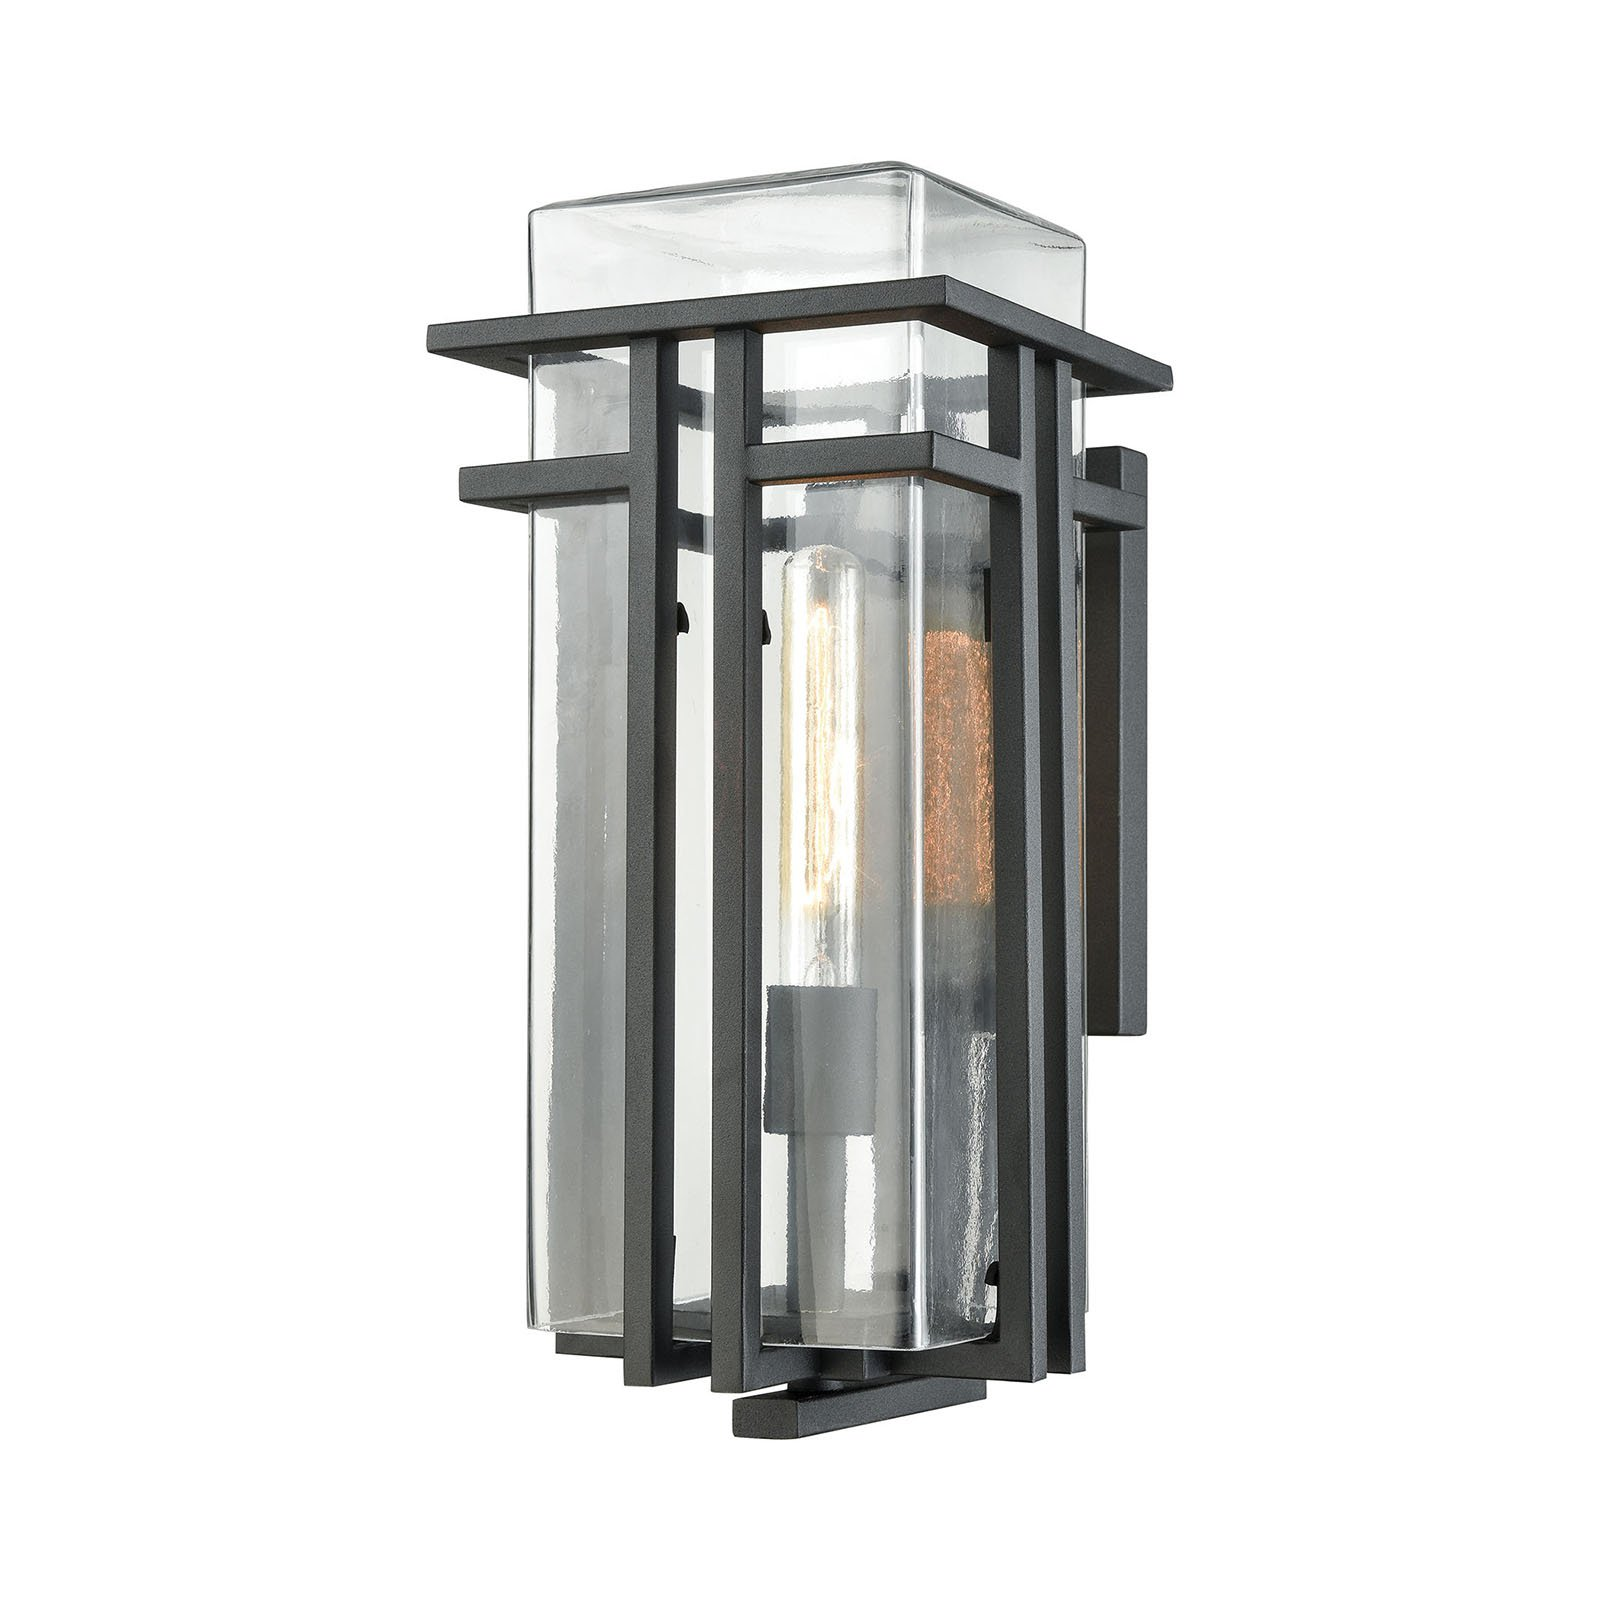 ELK Lighting Croftwell 1 Light Outdoor Wall Sconce by Elk Lighting